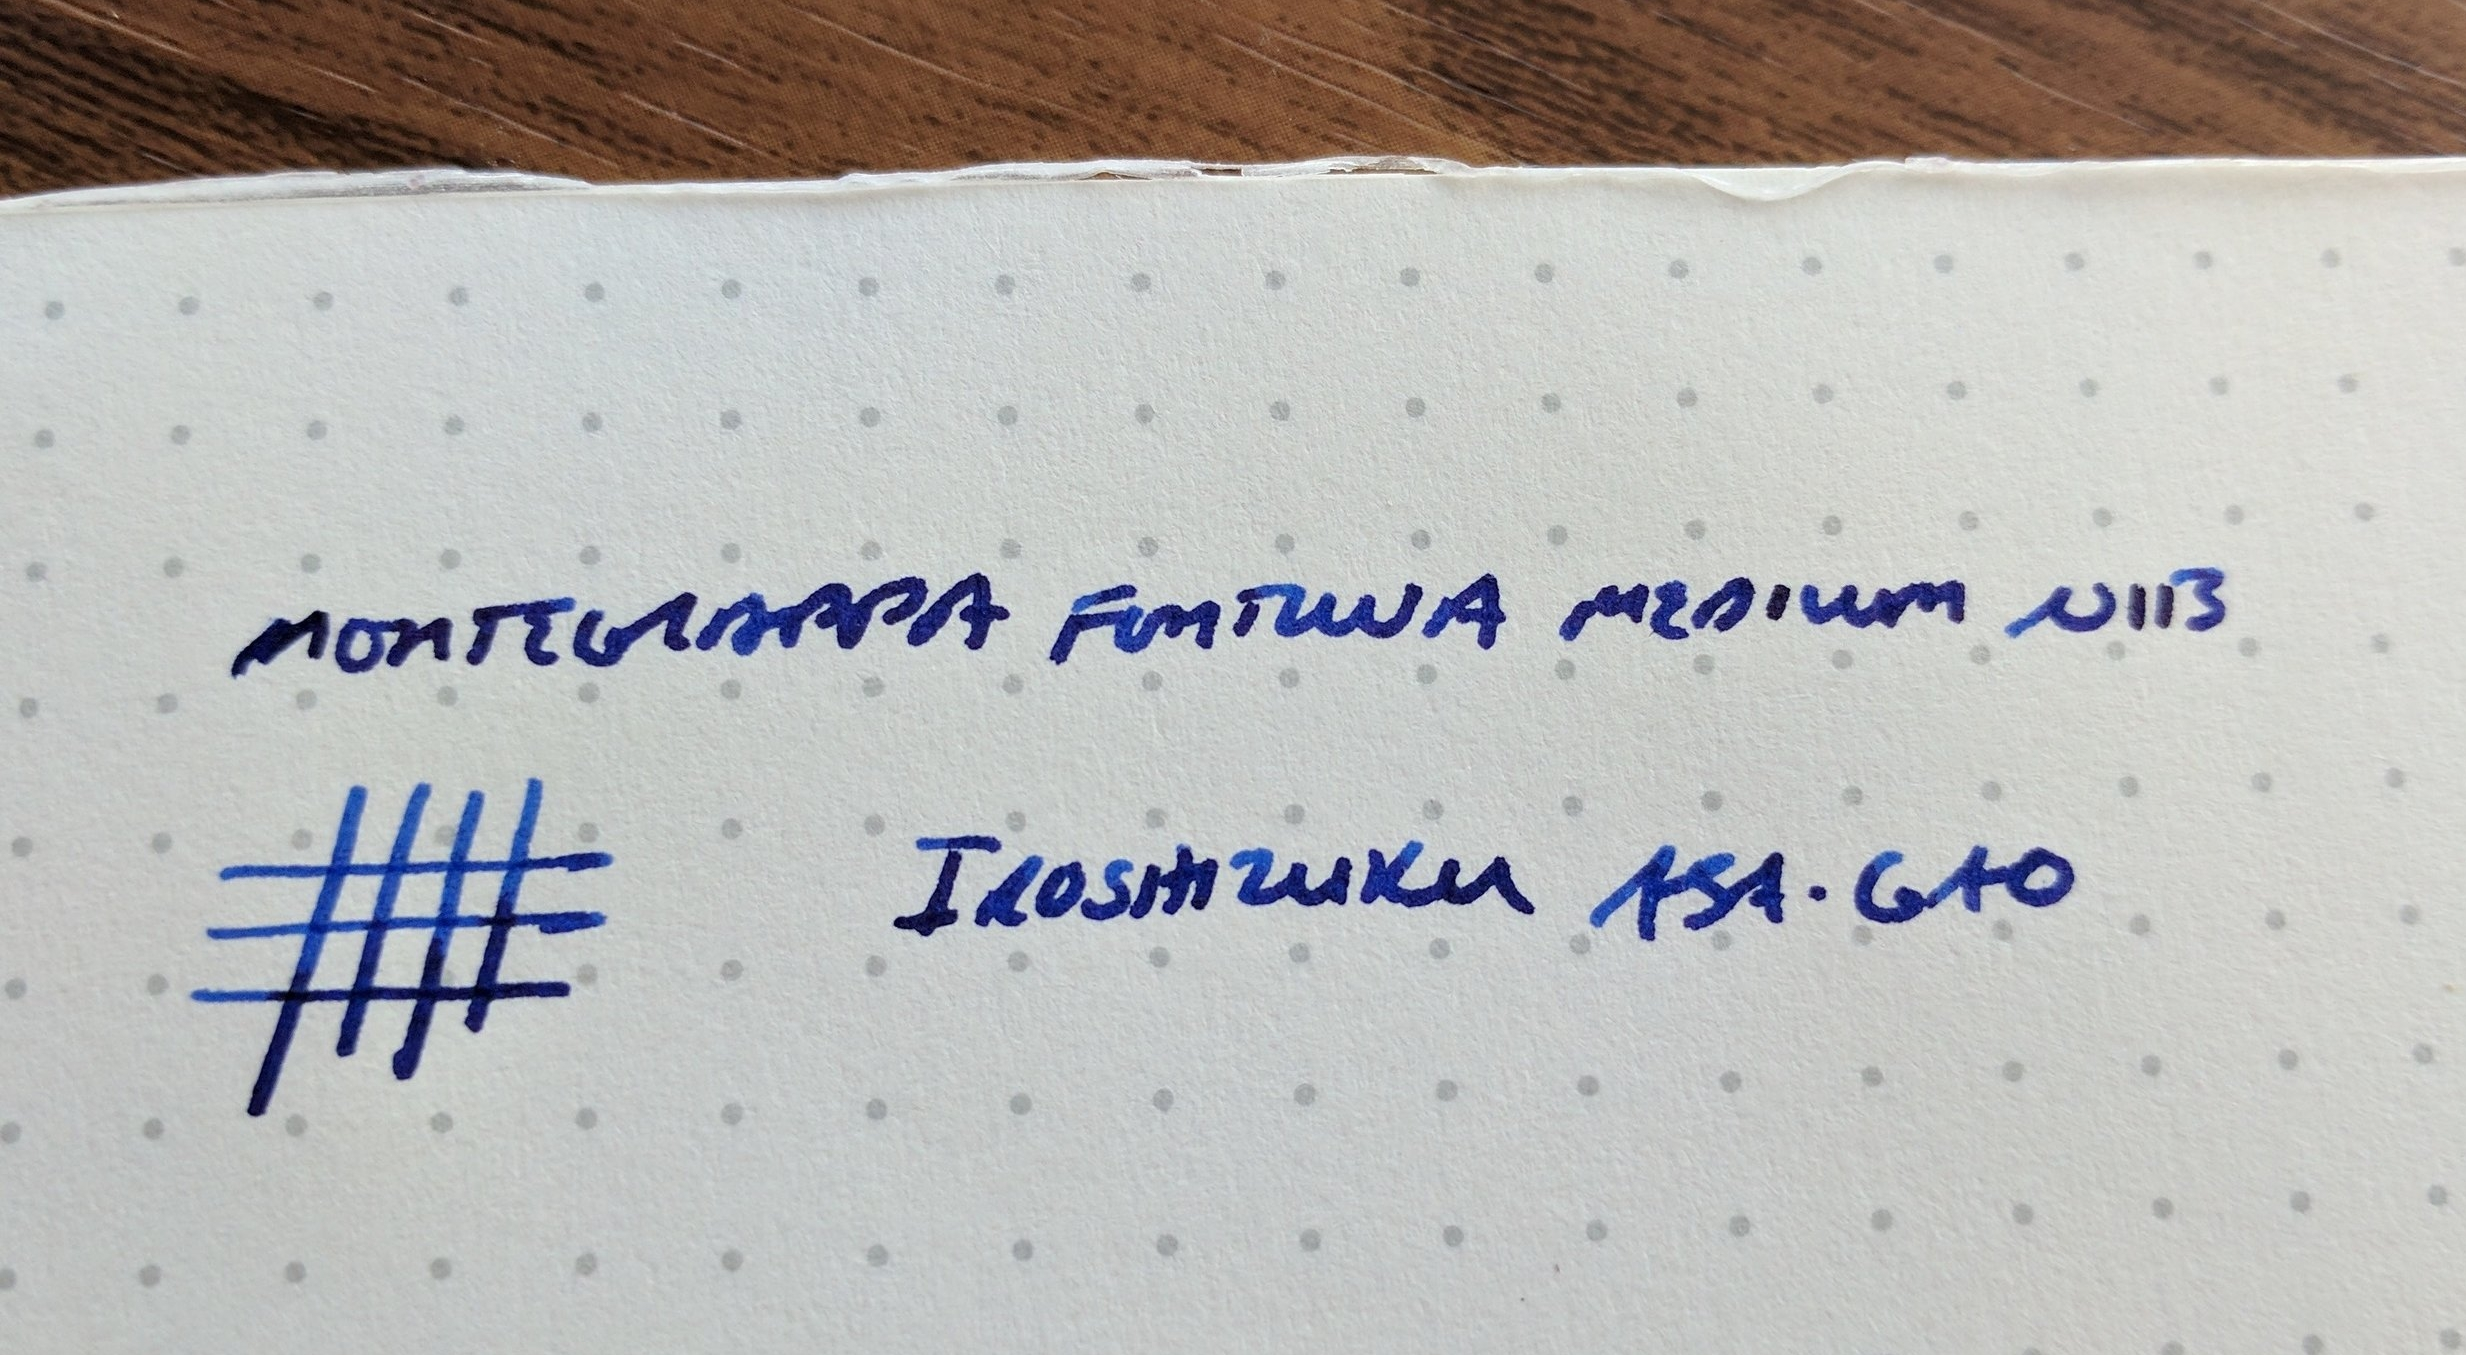 Montegrappa-Fortuna-White-Ruthenium-Medium-Writing-Sample